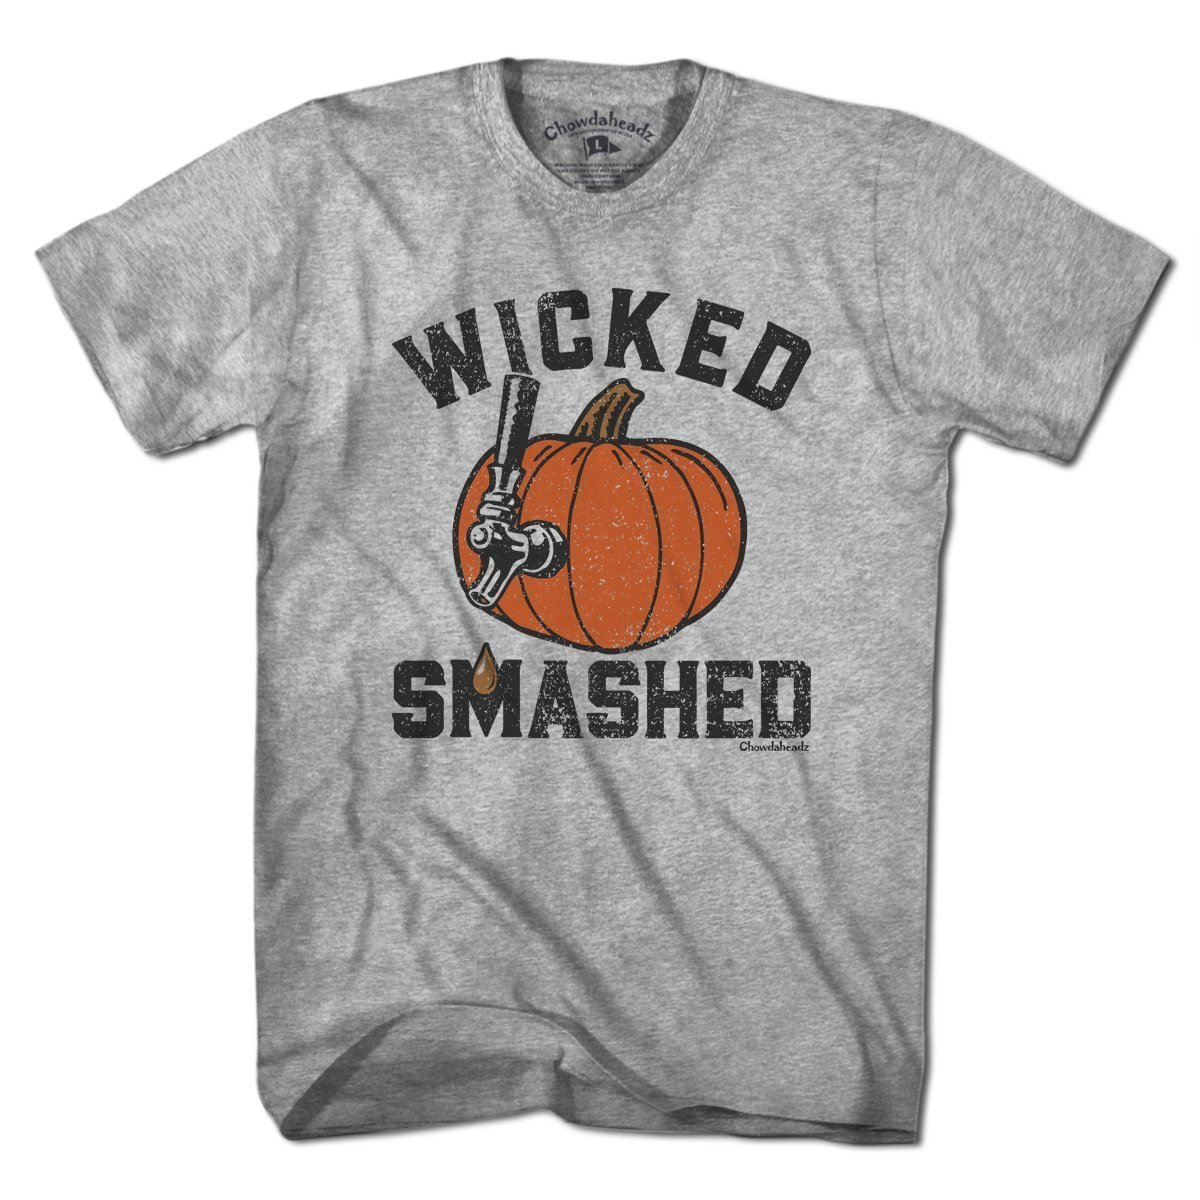 Wicked Smashed Pumpkin By Chowdaheadz Shirts